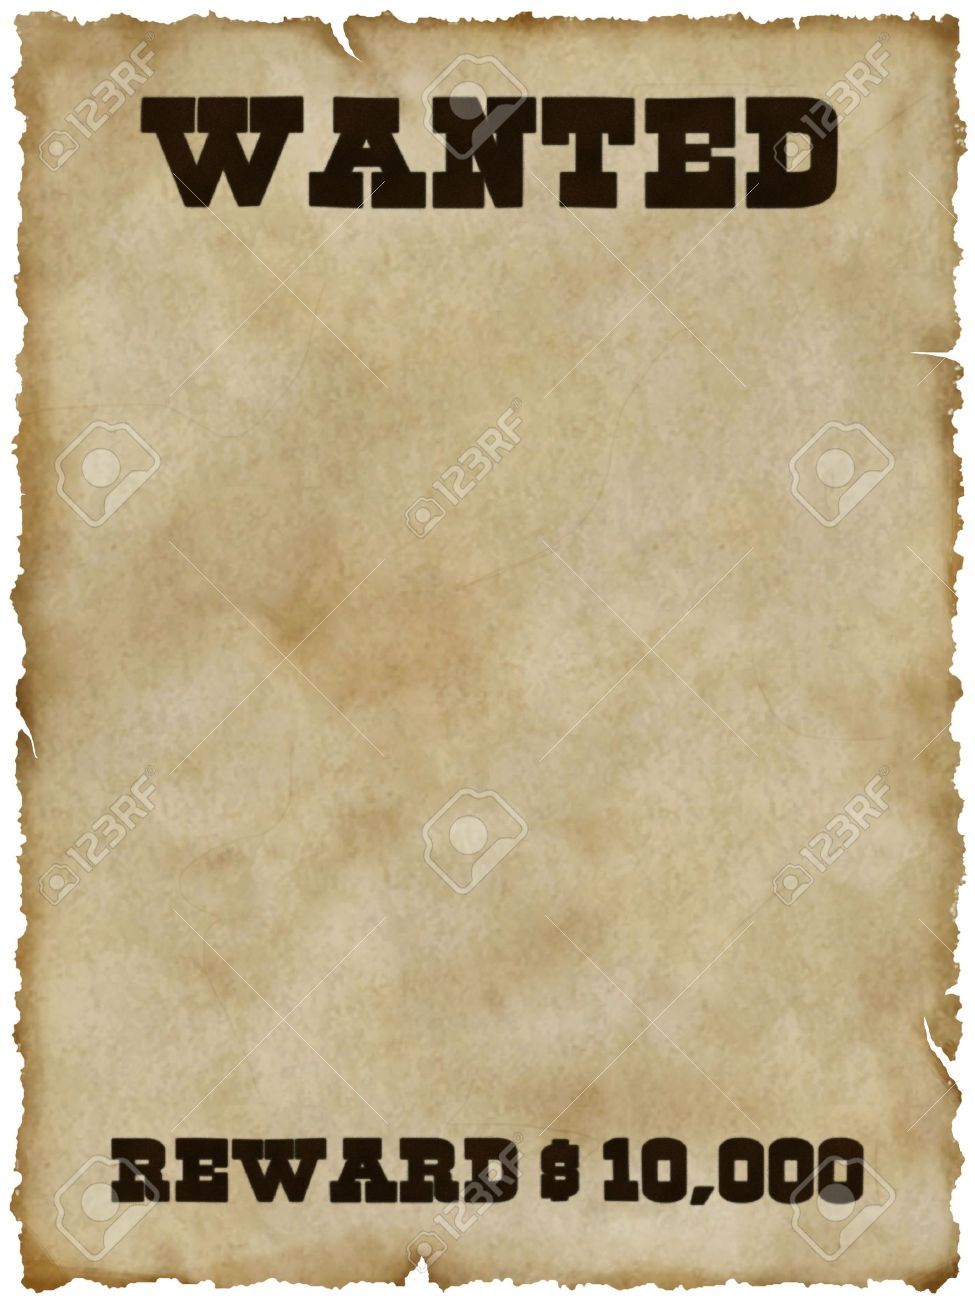 Wanted Poster Stock Photo, Picture And Royalty Free Image. Image ...